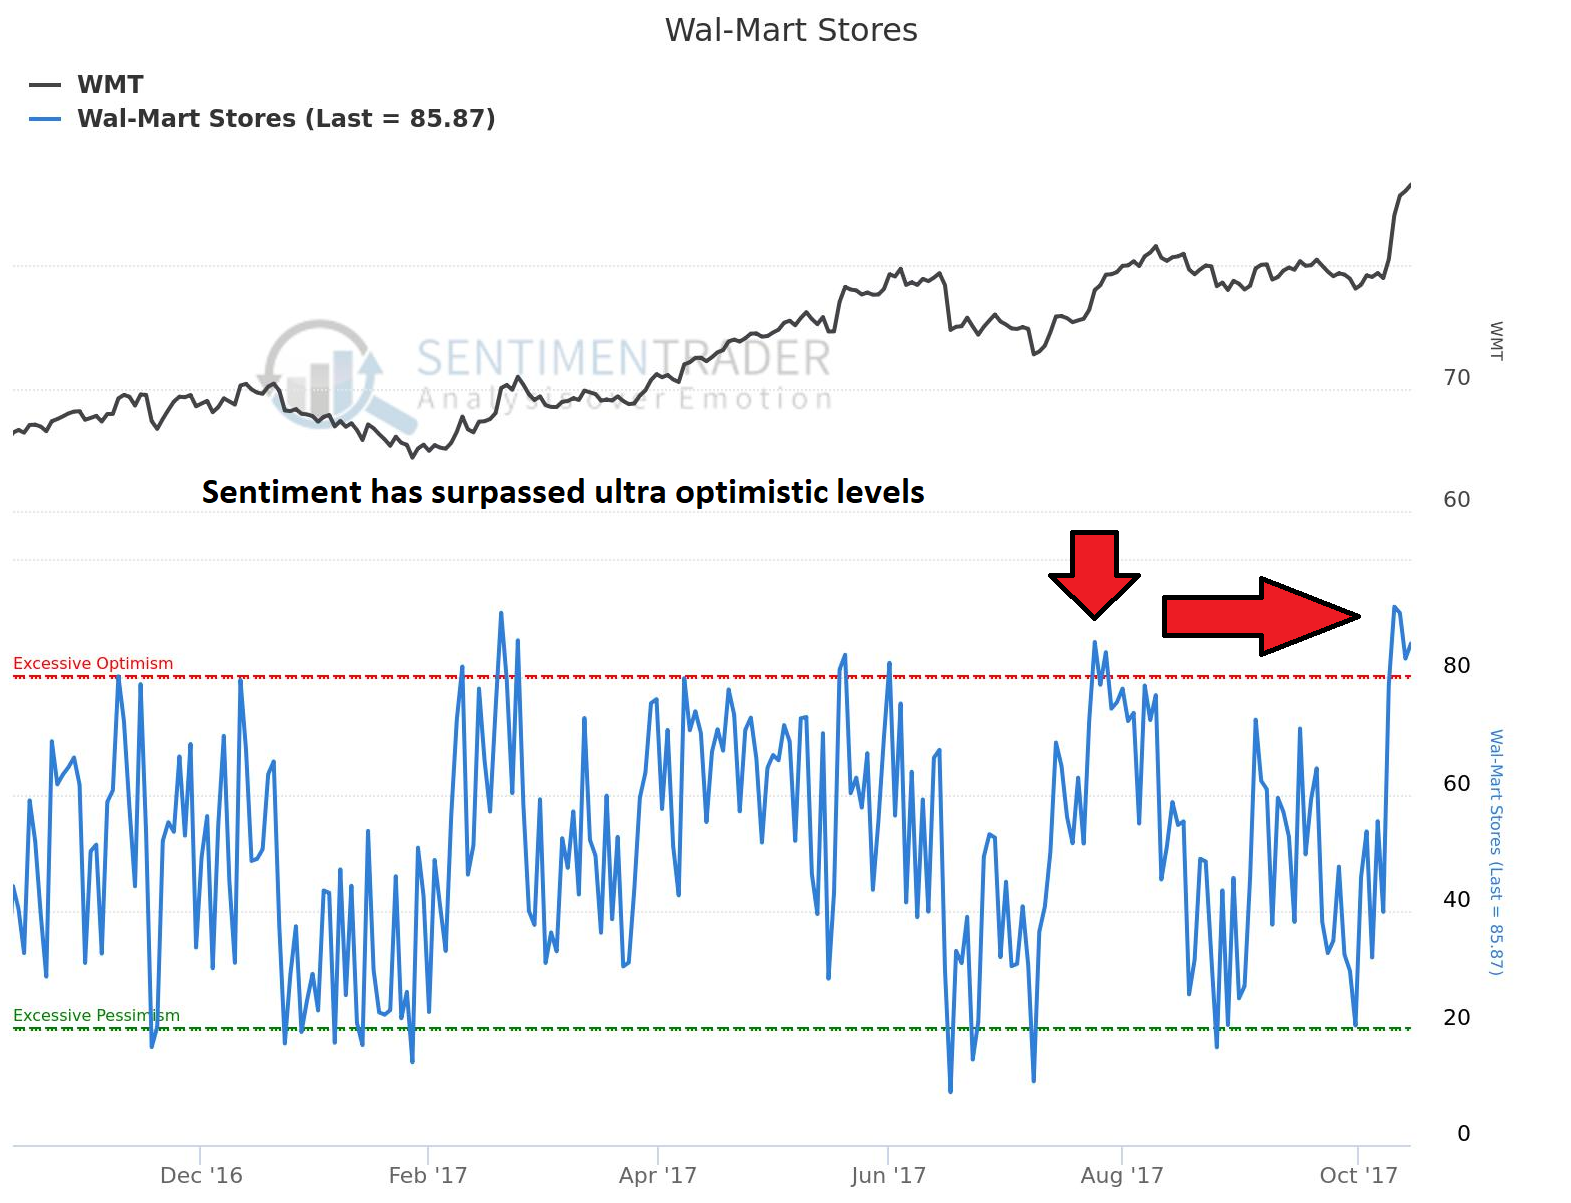 Are Wal-Mart Stores, Inc. (WMT) Earnings Estimates Revised?